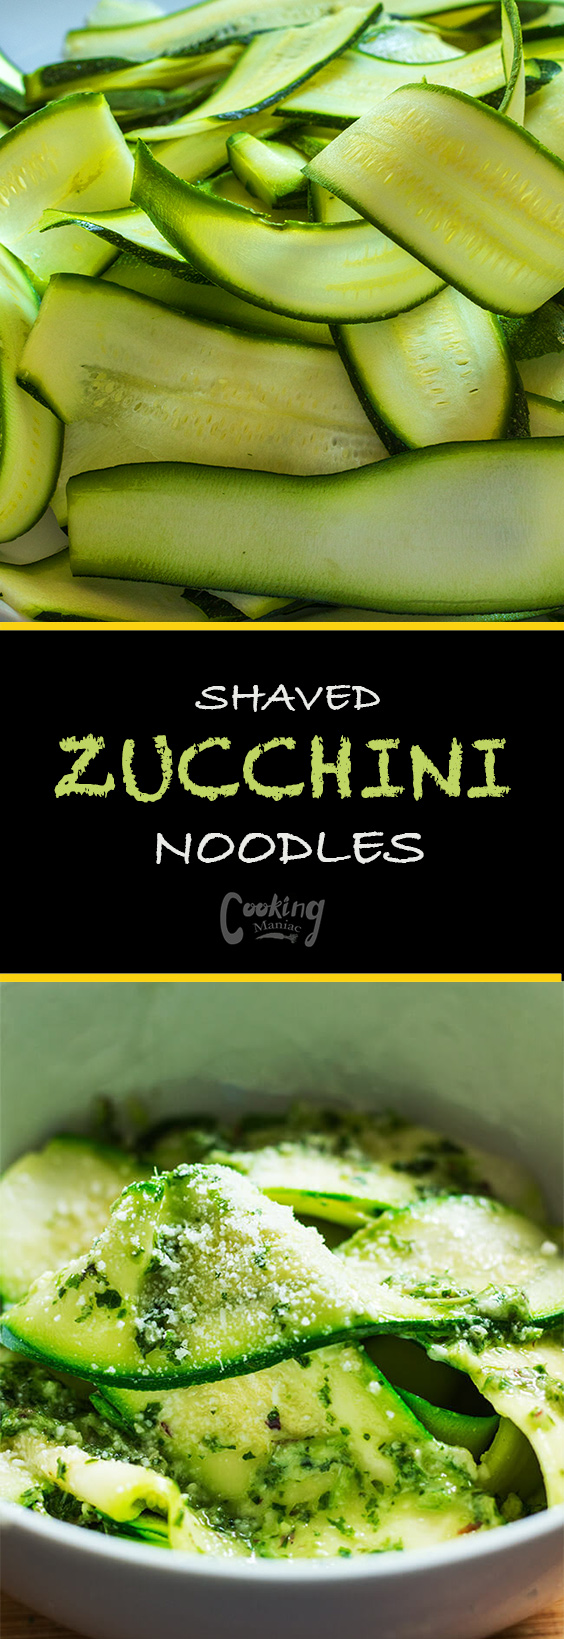 Shaved zucchini noodles are perhaps one of my favorite ways to have zucchini. Not to mention that it is topped this creamy avocado mint sauce. So addicting.